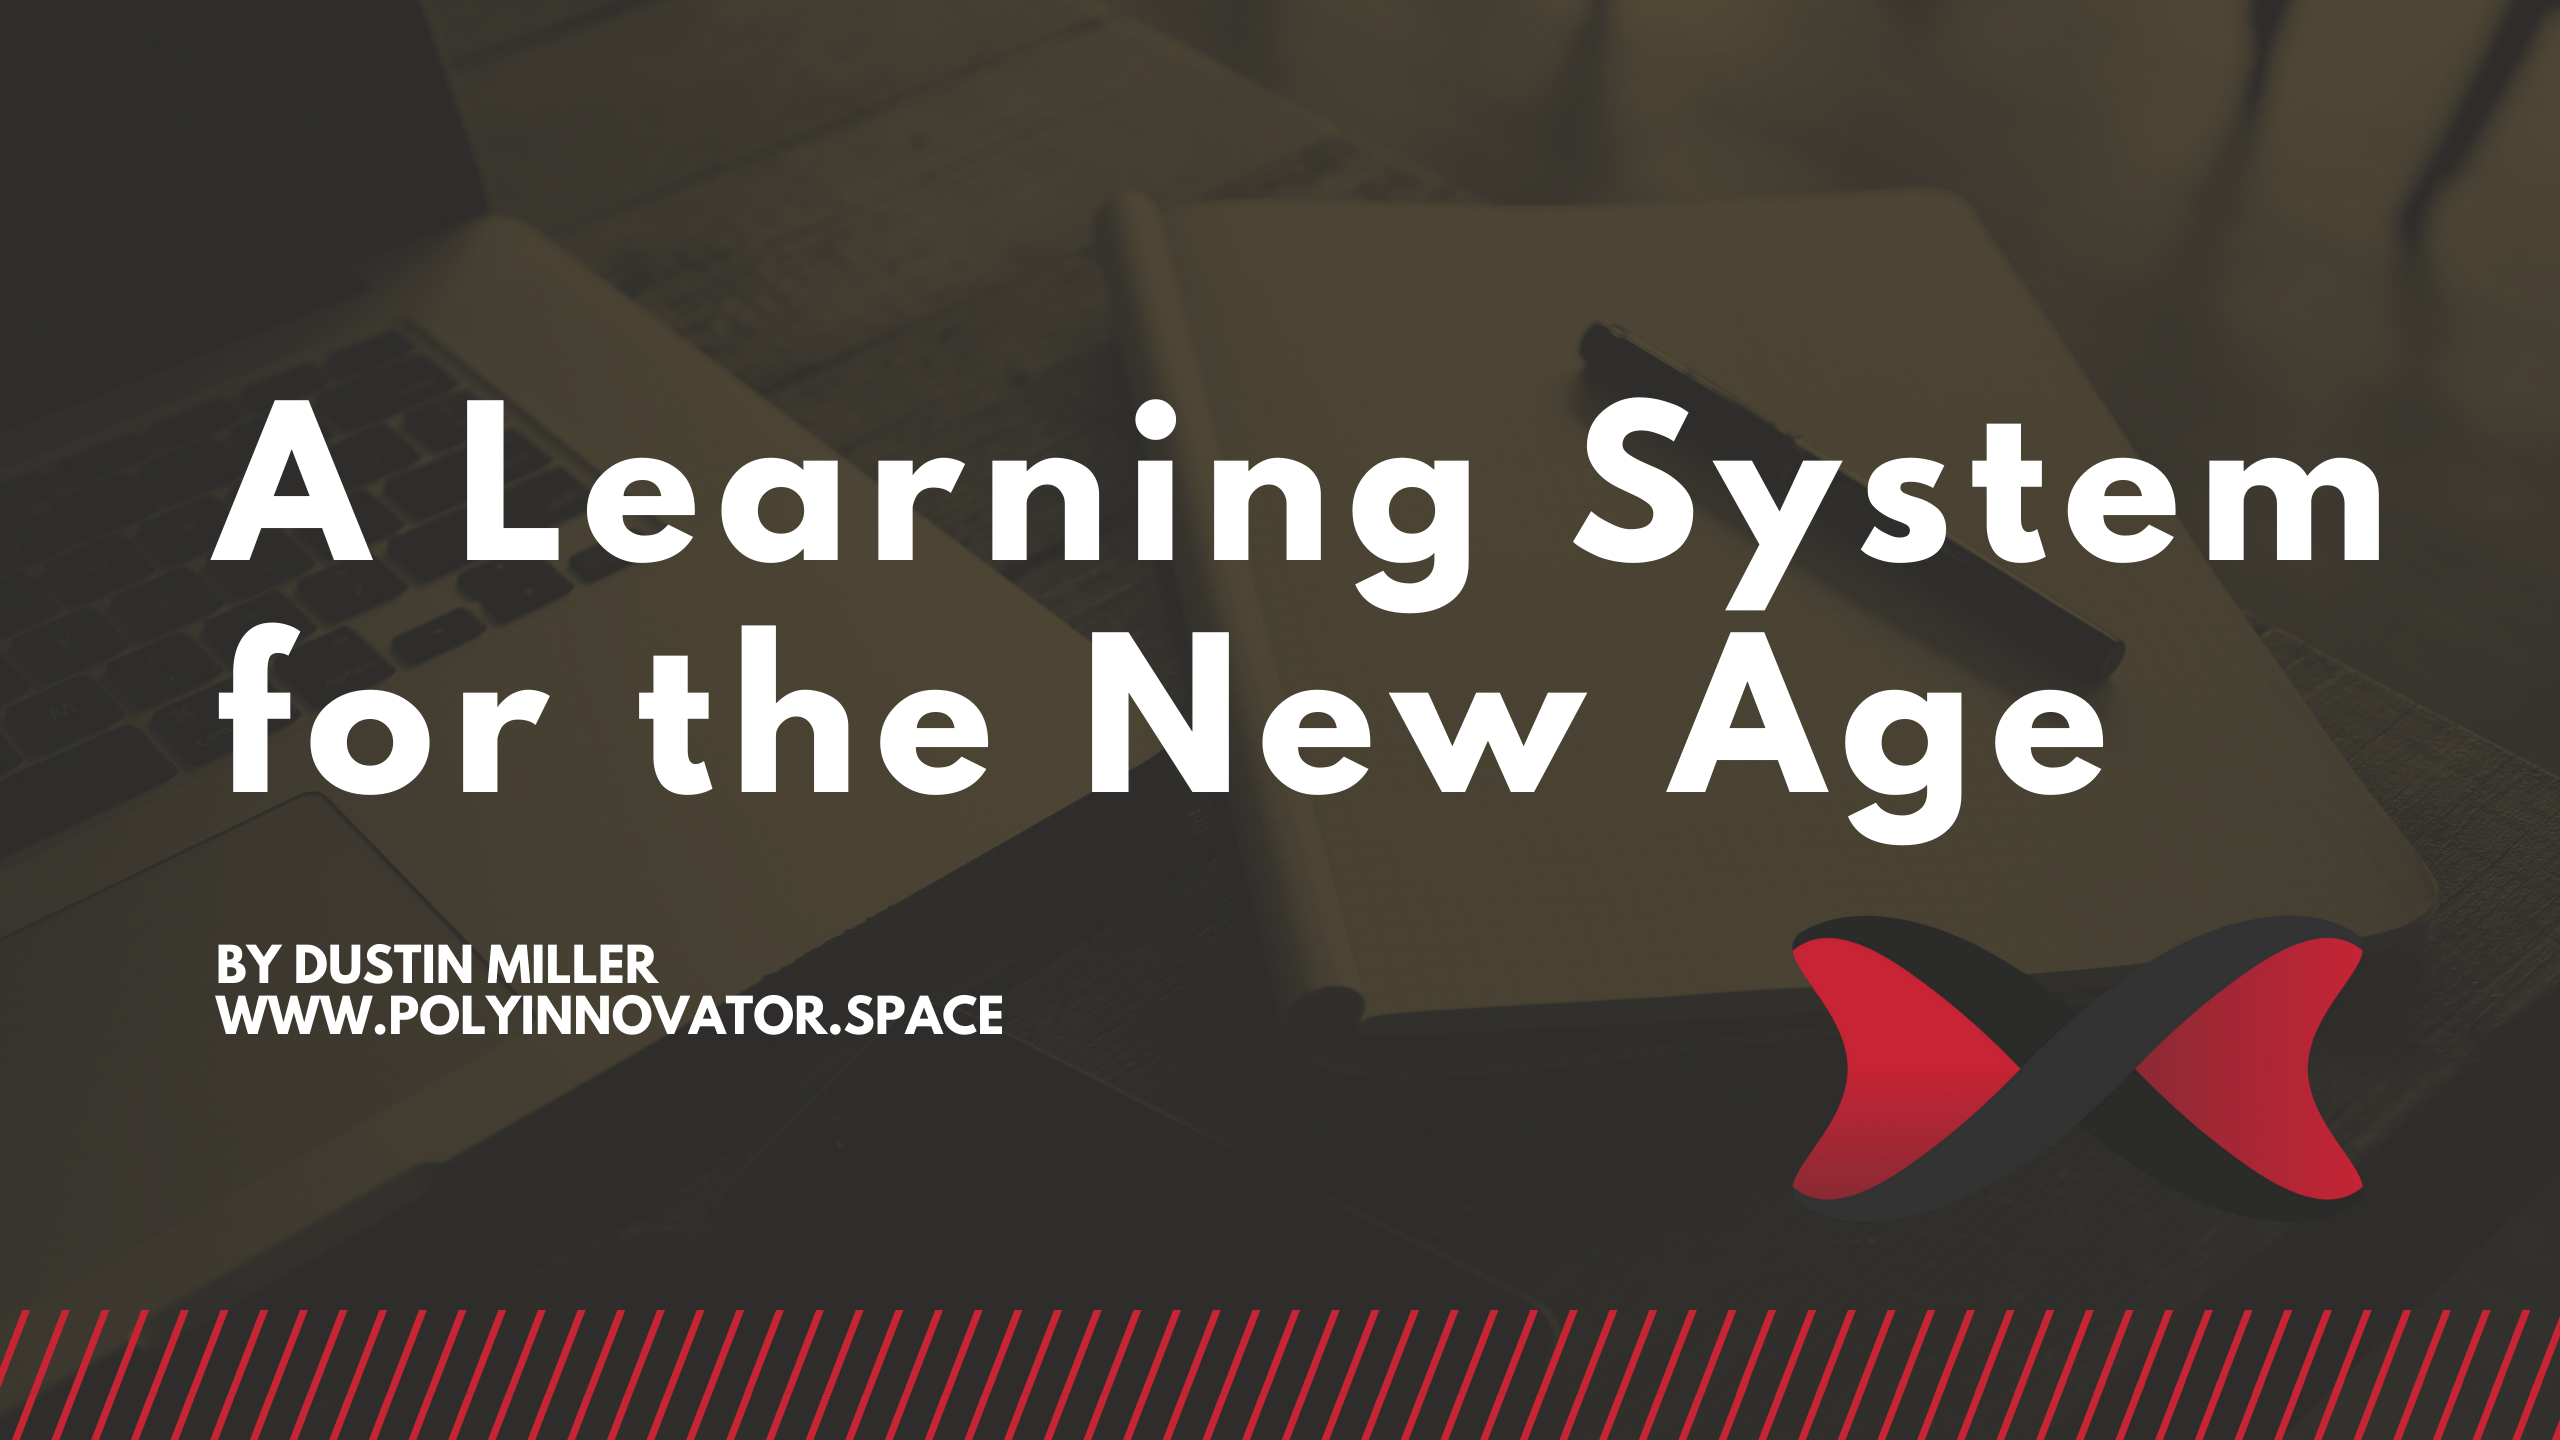 A Learning System for the New Age